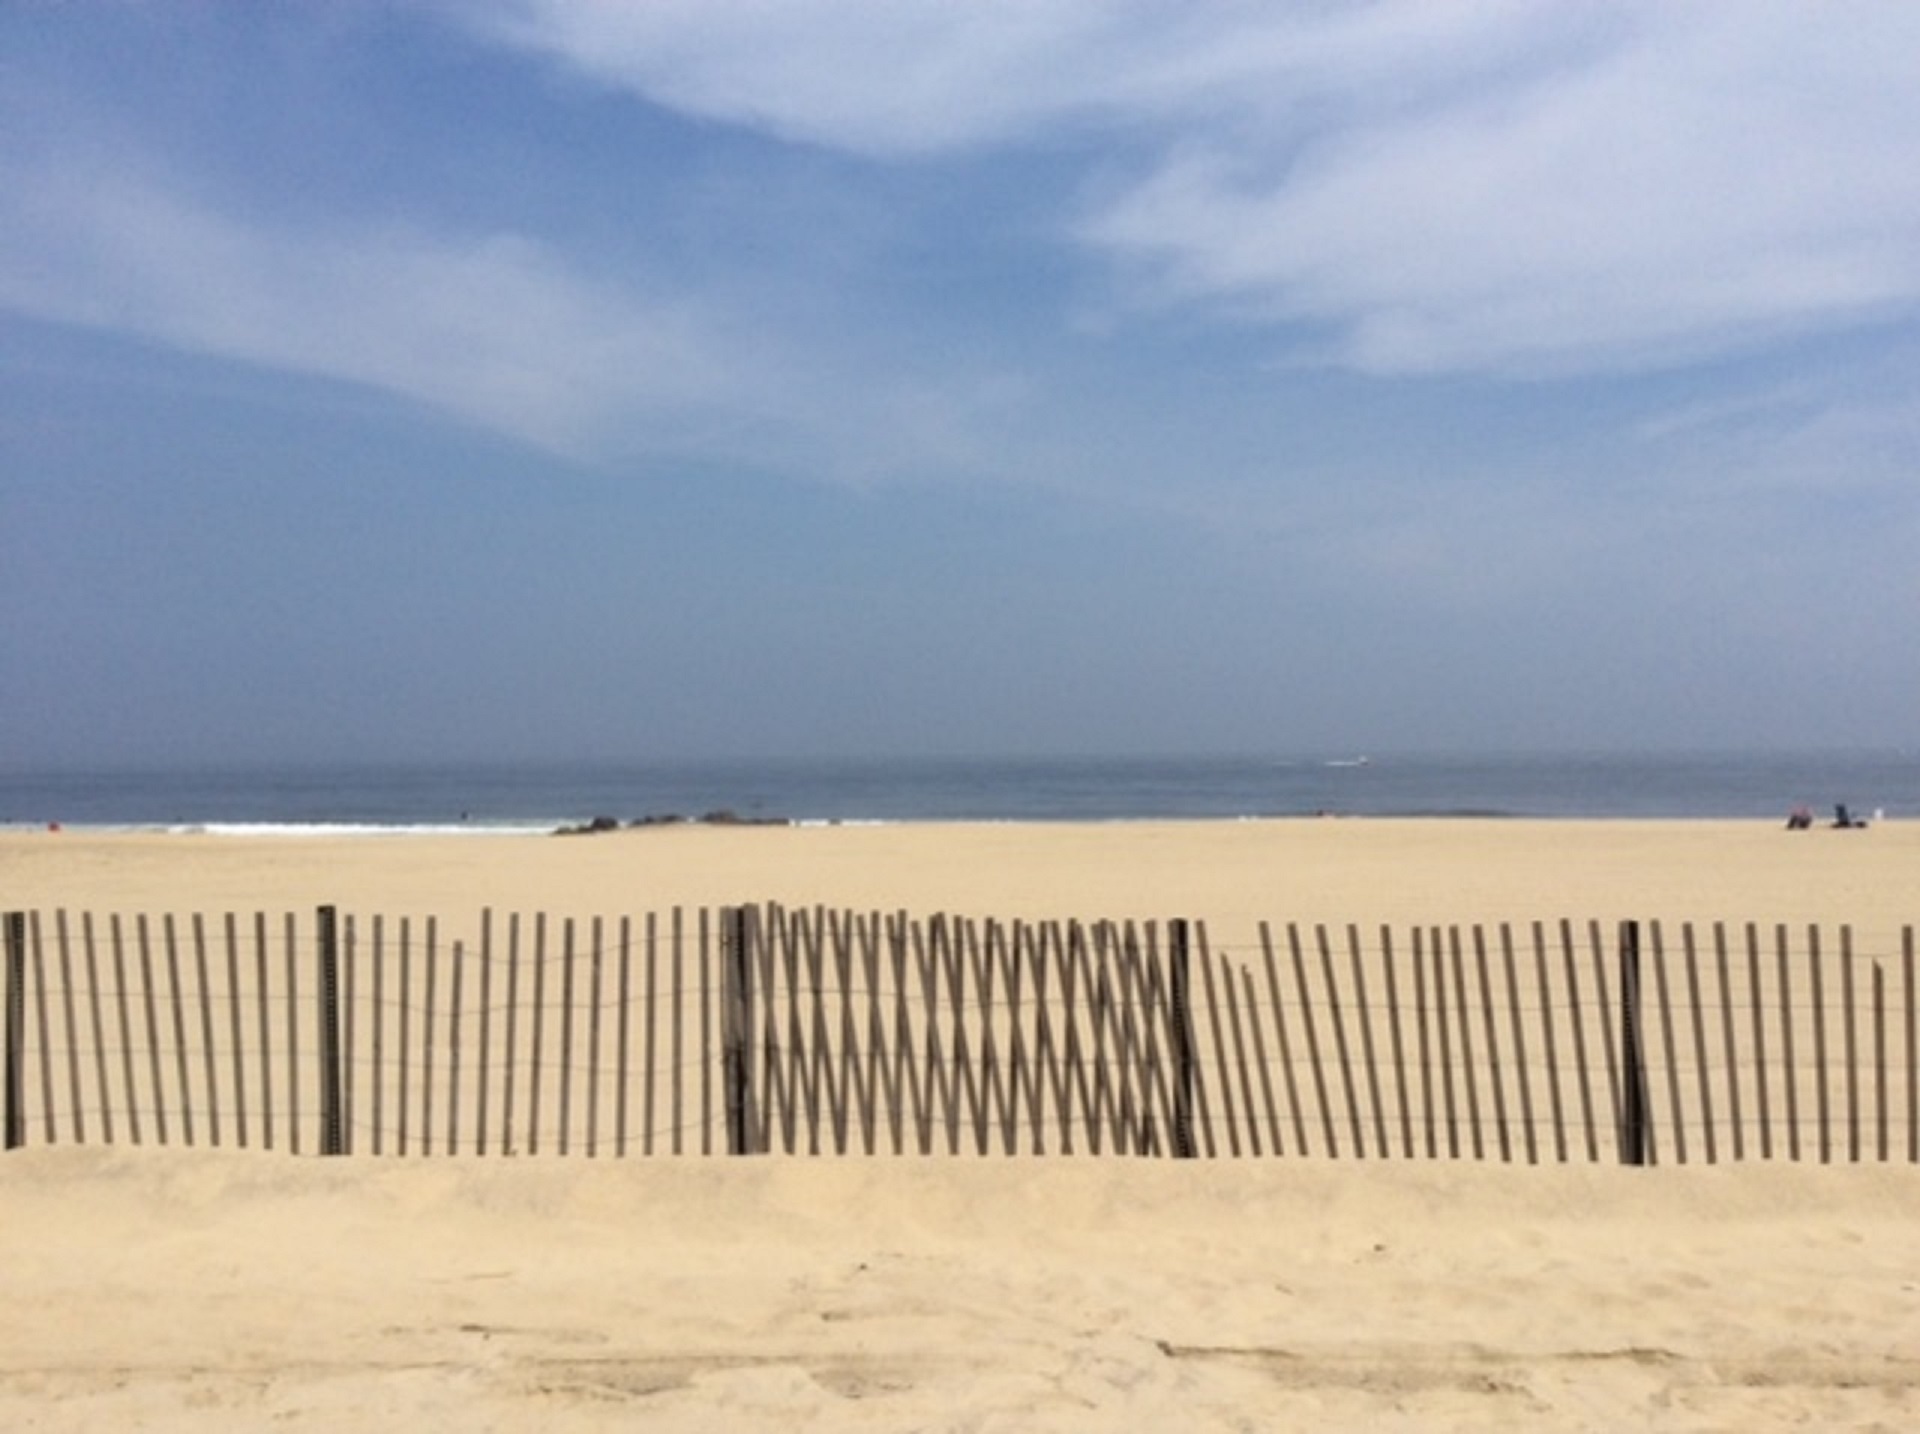 Condominium for Sale at Enjoy Beach Side Living 170 1st Ave Manasquan, New Jersey 08736 United States